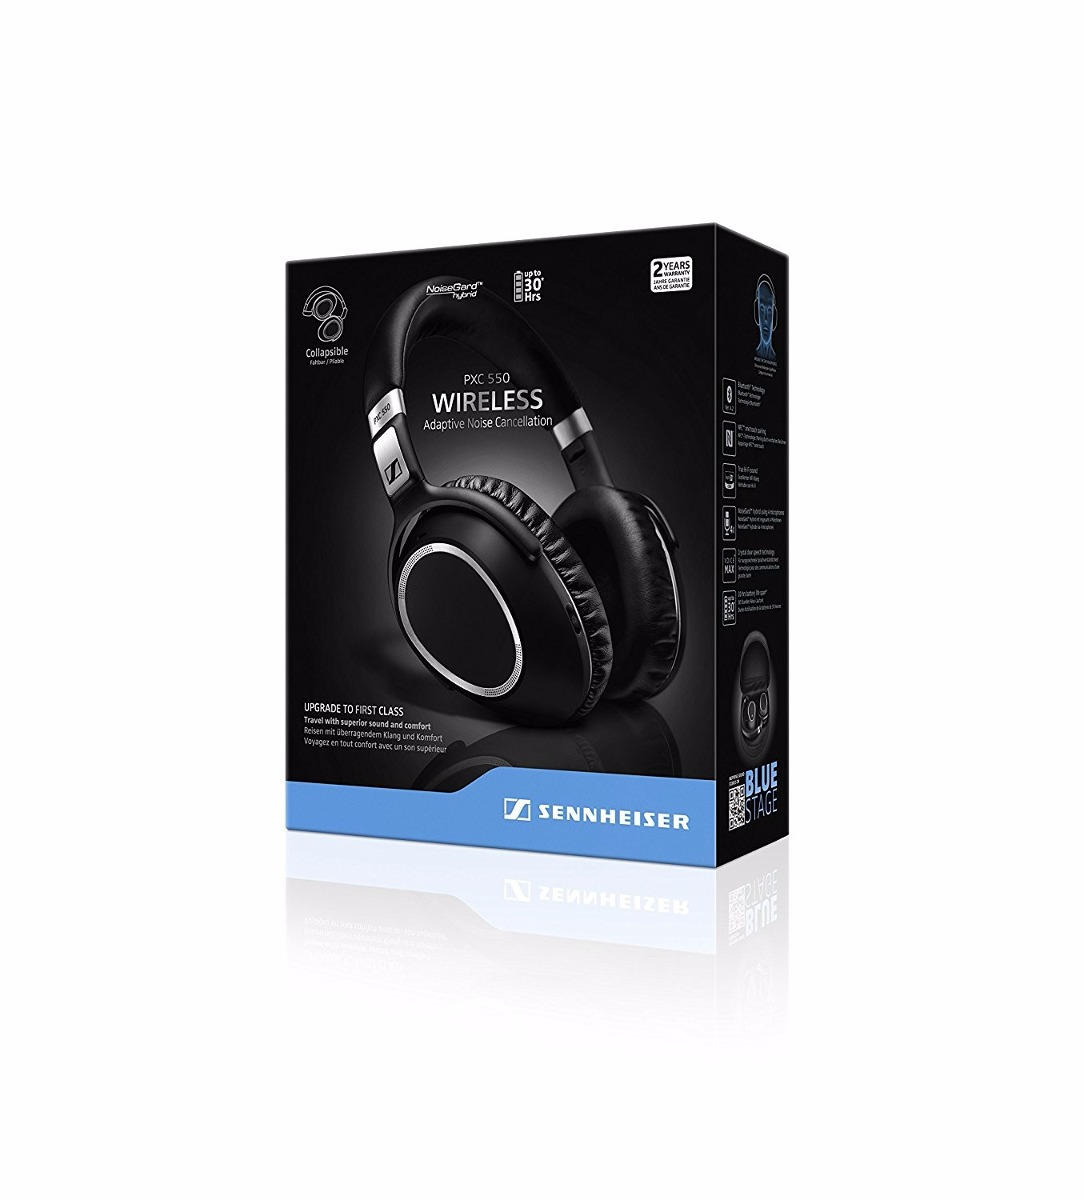 Strepito Auricular Sennheiser PXC 550 Wireless Adaptive Noise Cancellation